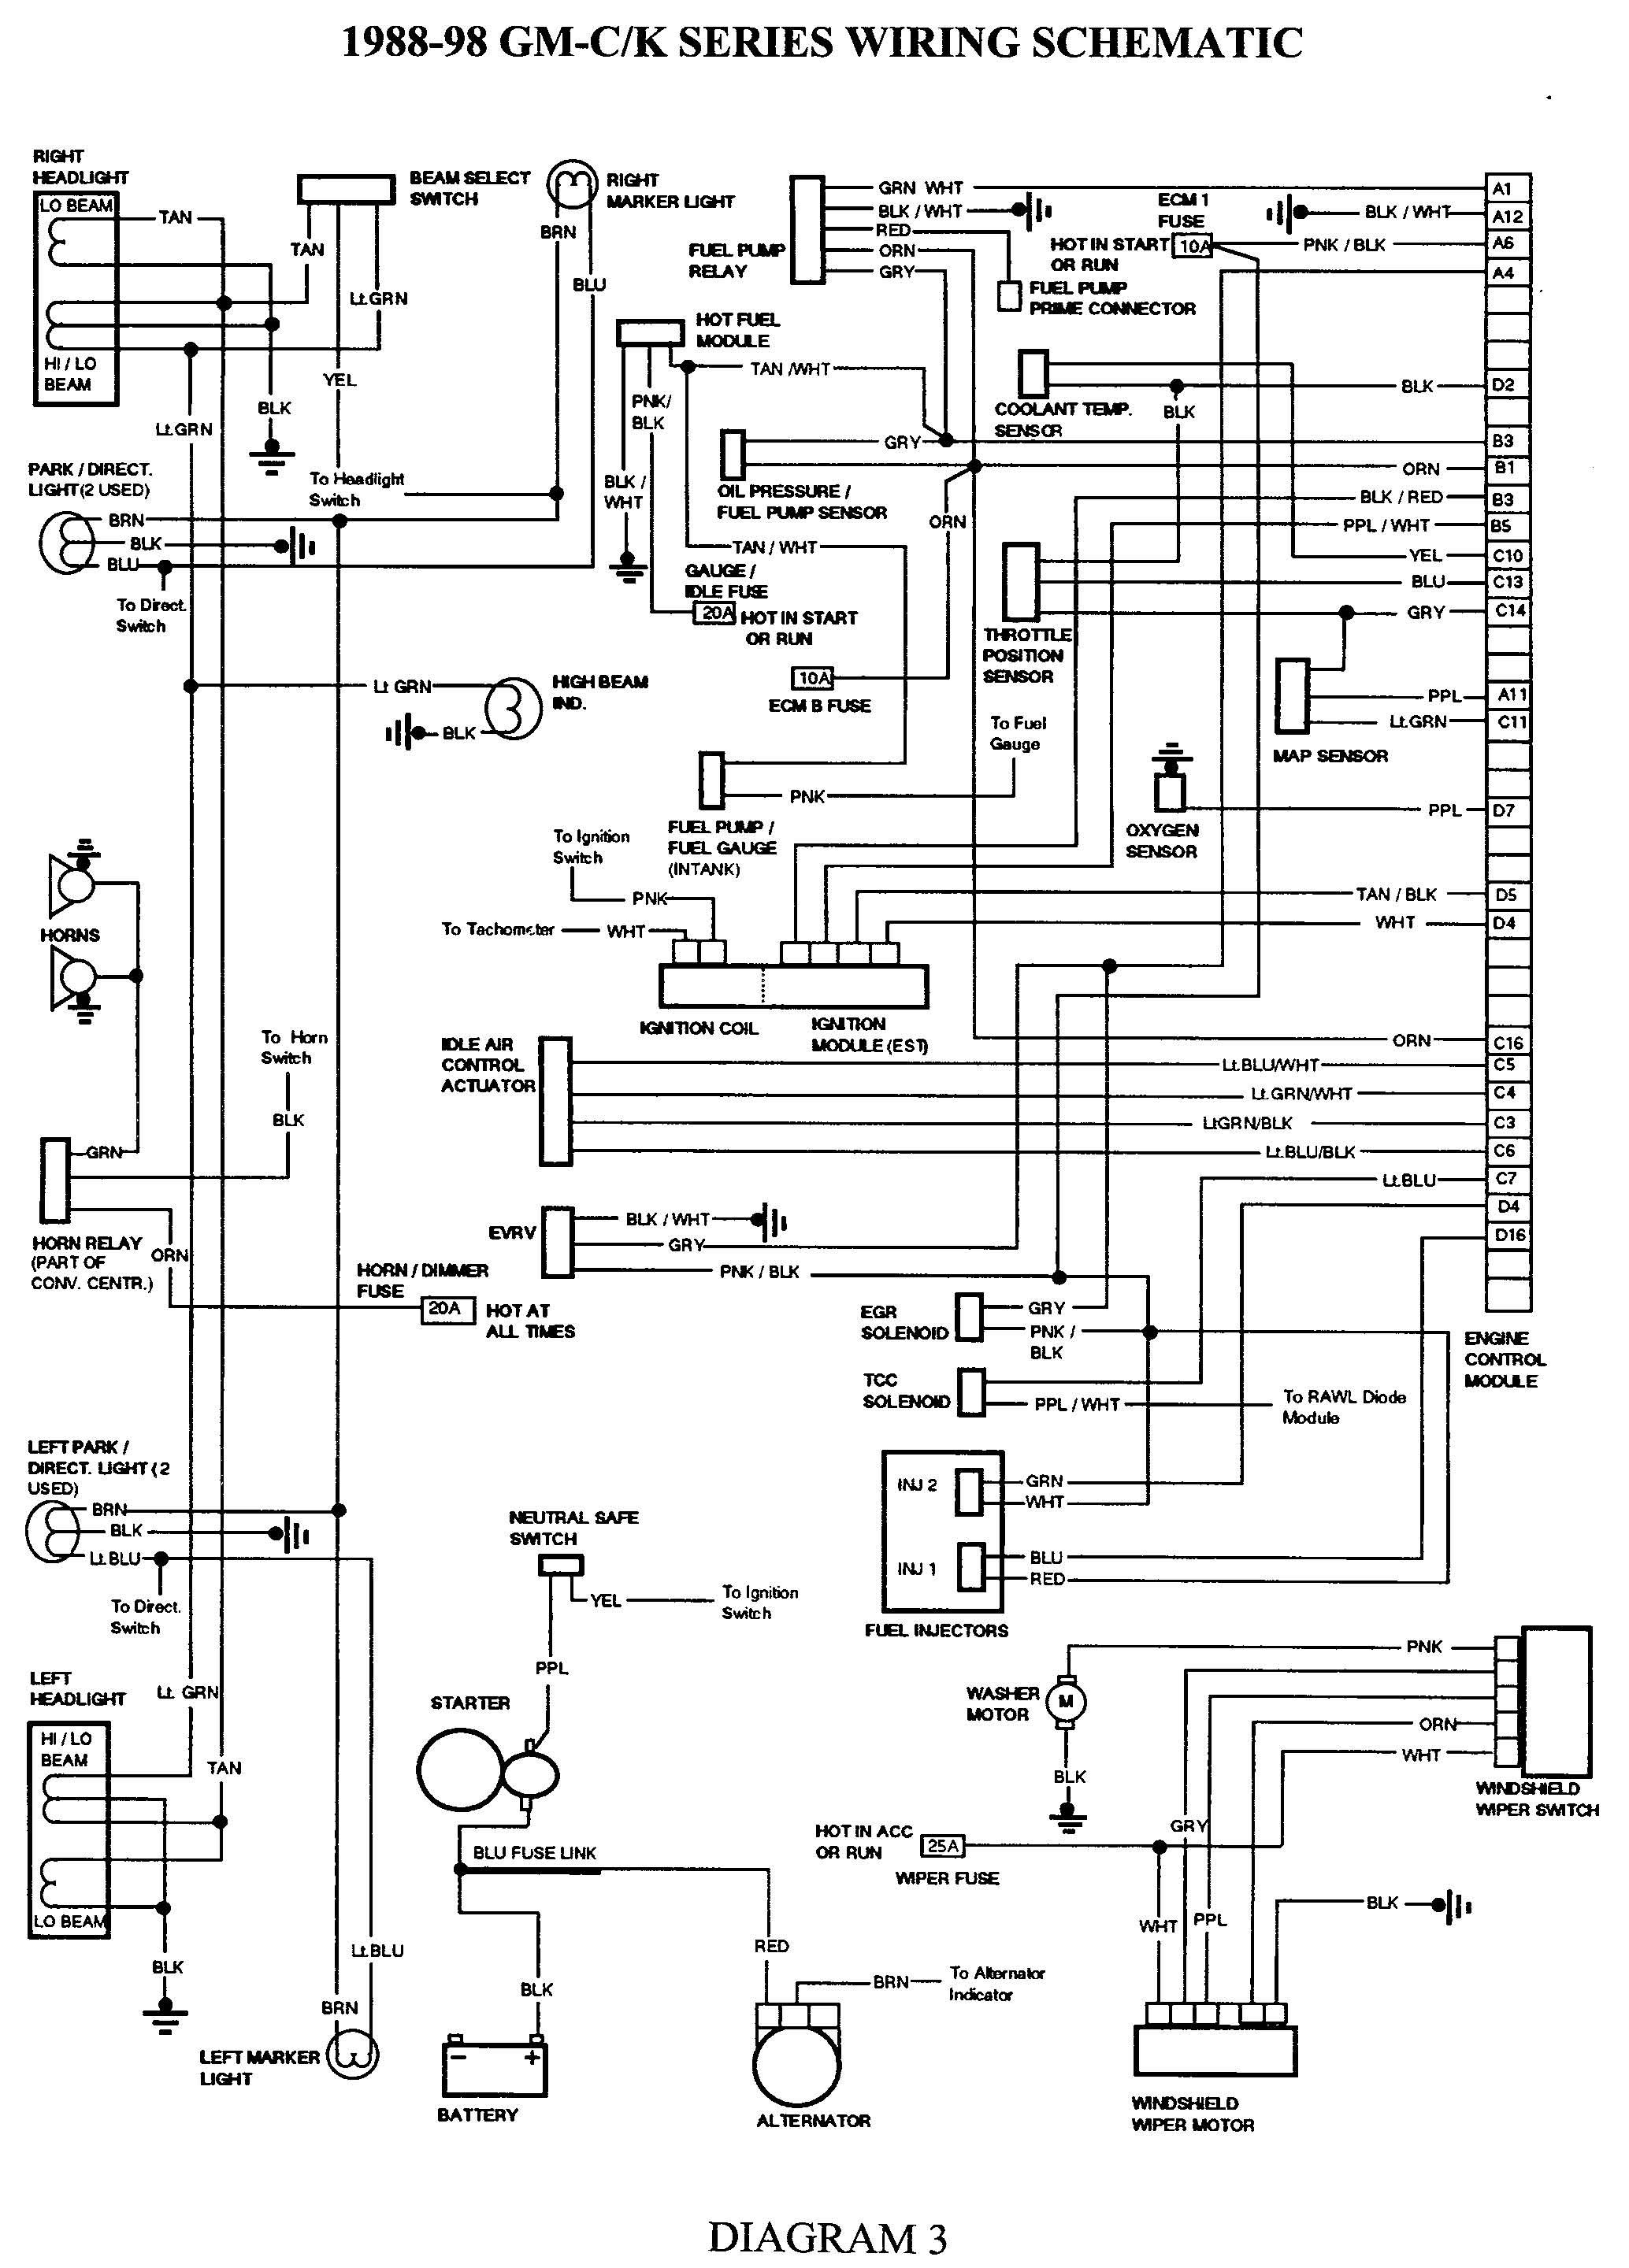 chevy g30 wiring diagram detailed schematics diagram rh jppastryarts com 1982  Ford F-150 Ignition Wiring Diagram 1966 Ford Ignition Switch Wiring Diagram